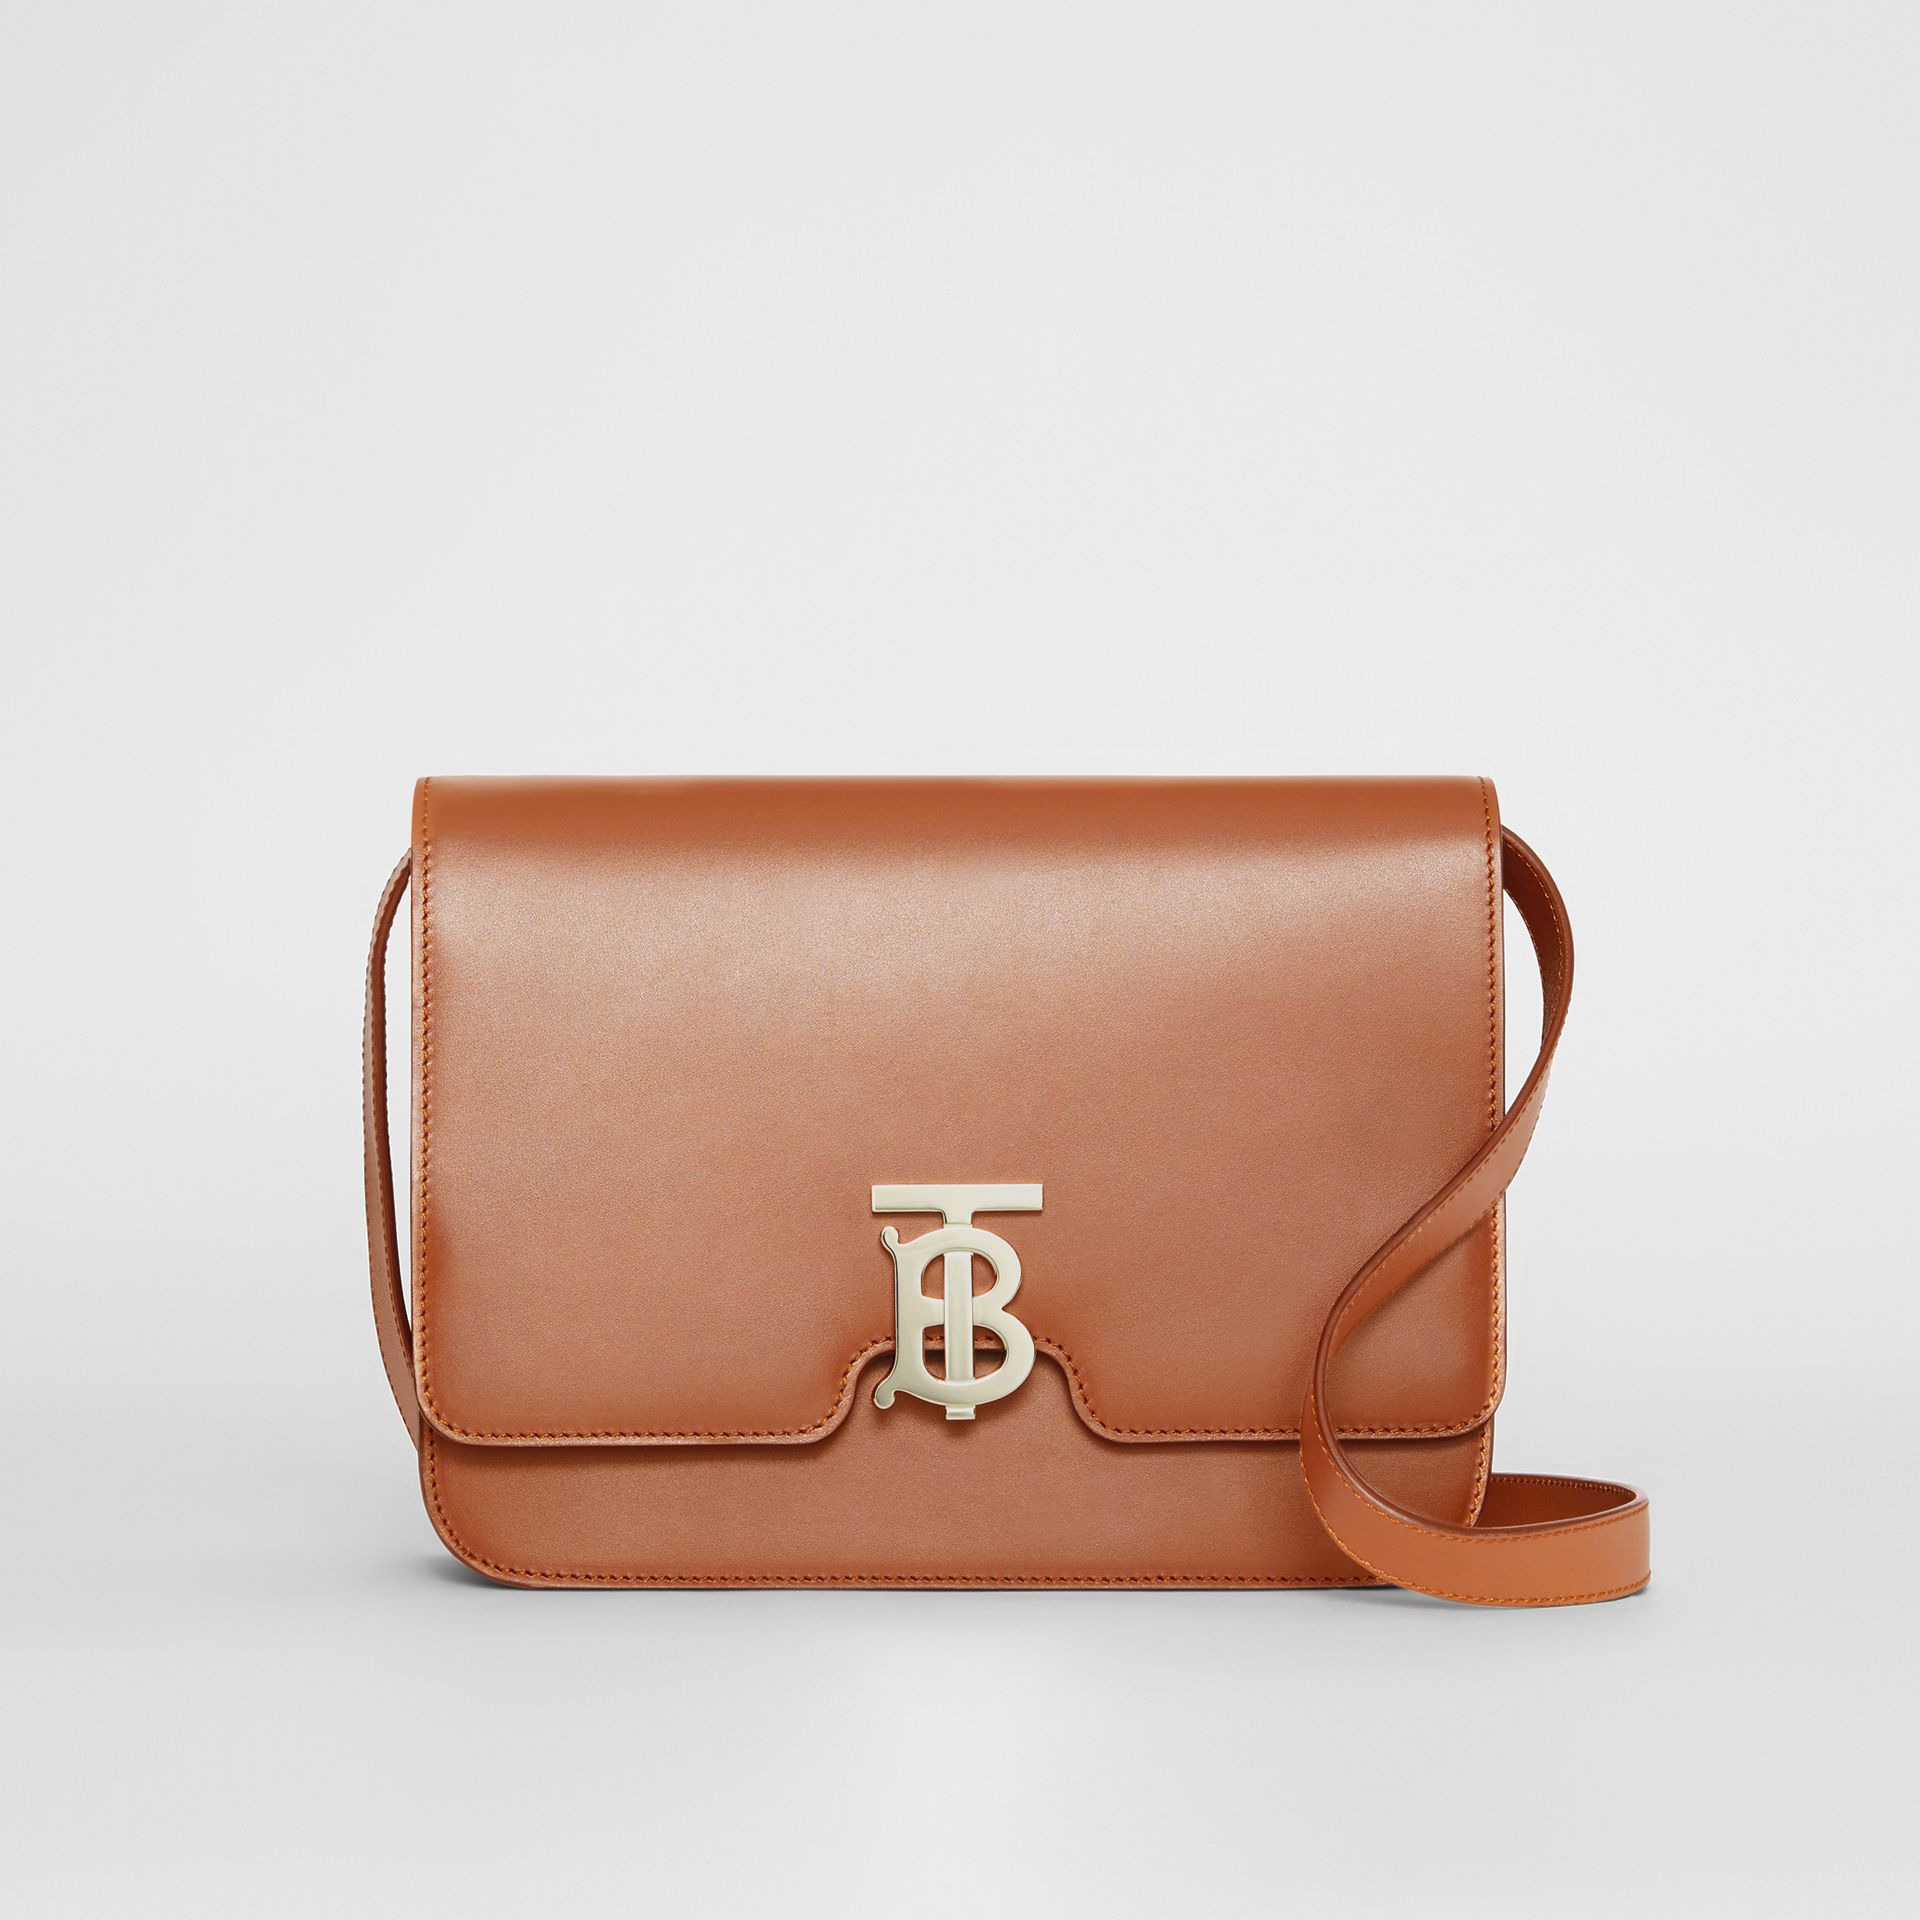 Medium Leather TB Bag in Malt Brown - Women | Burberry - gallery image 0